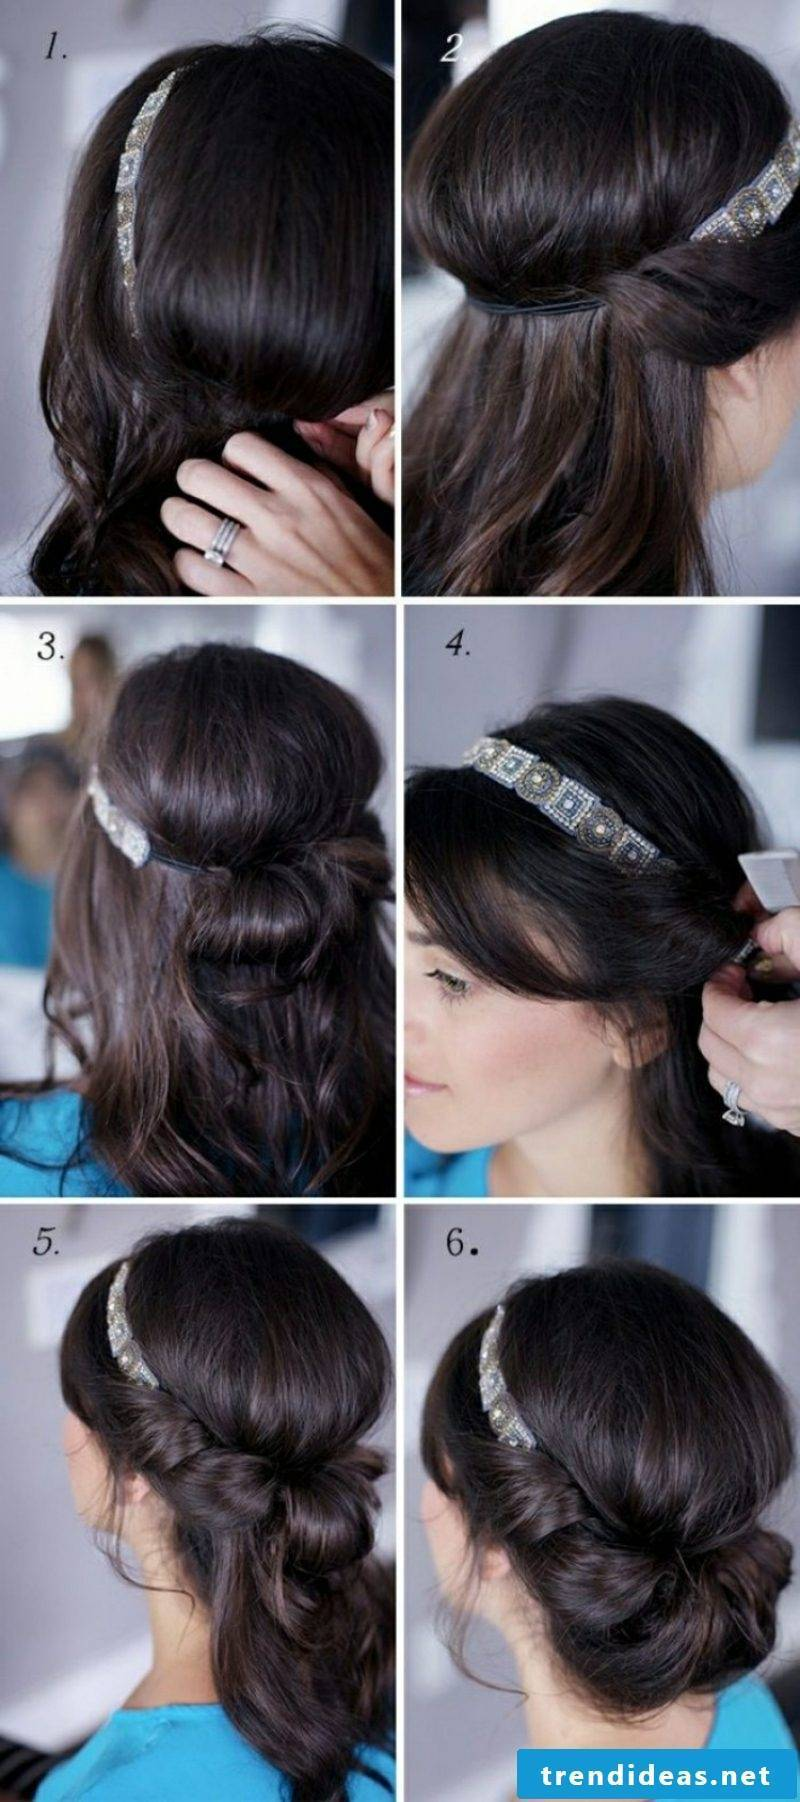 Make hairstyles yourself Oktoberfest instructions in pictures